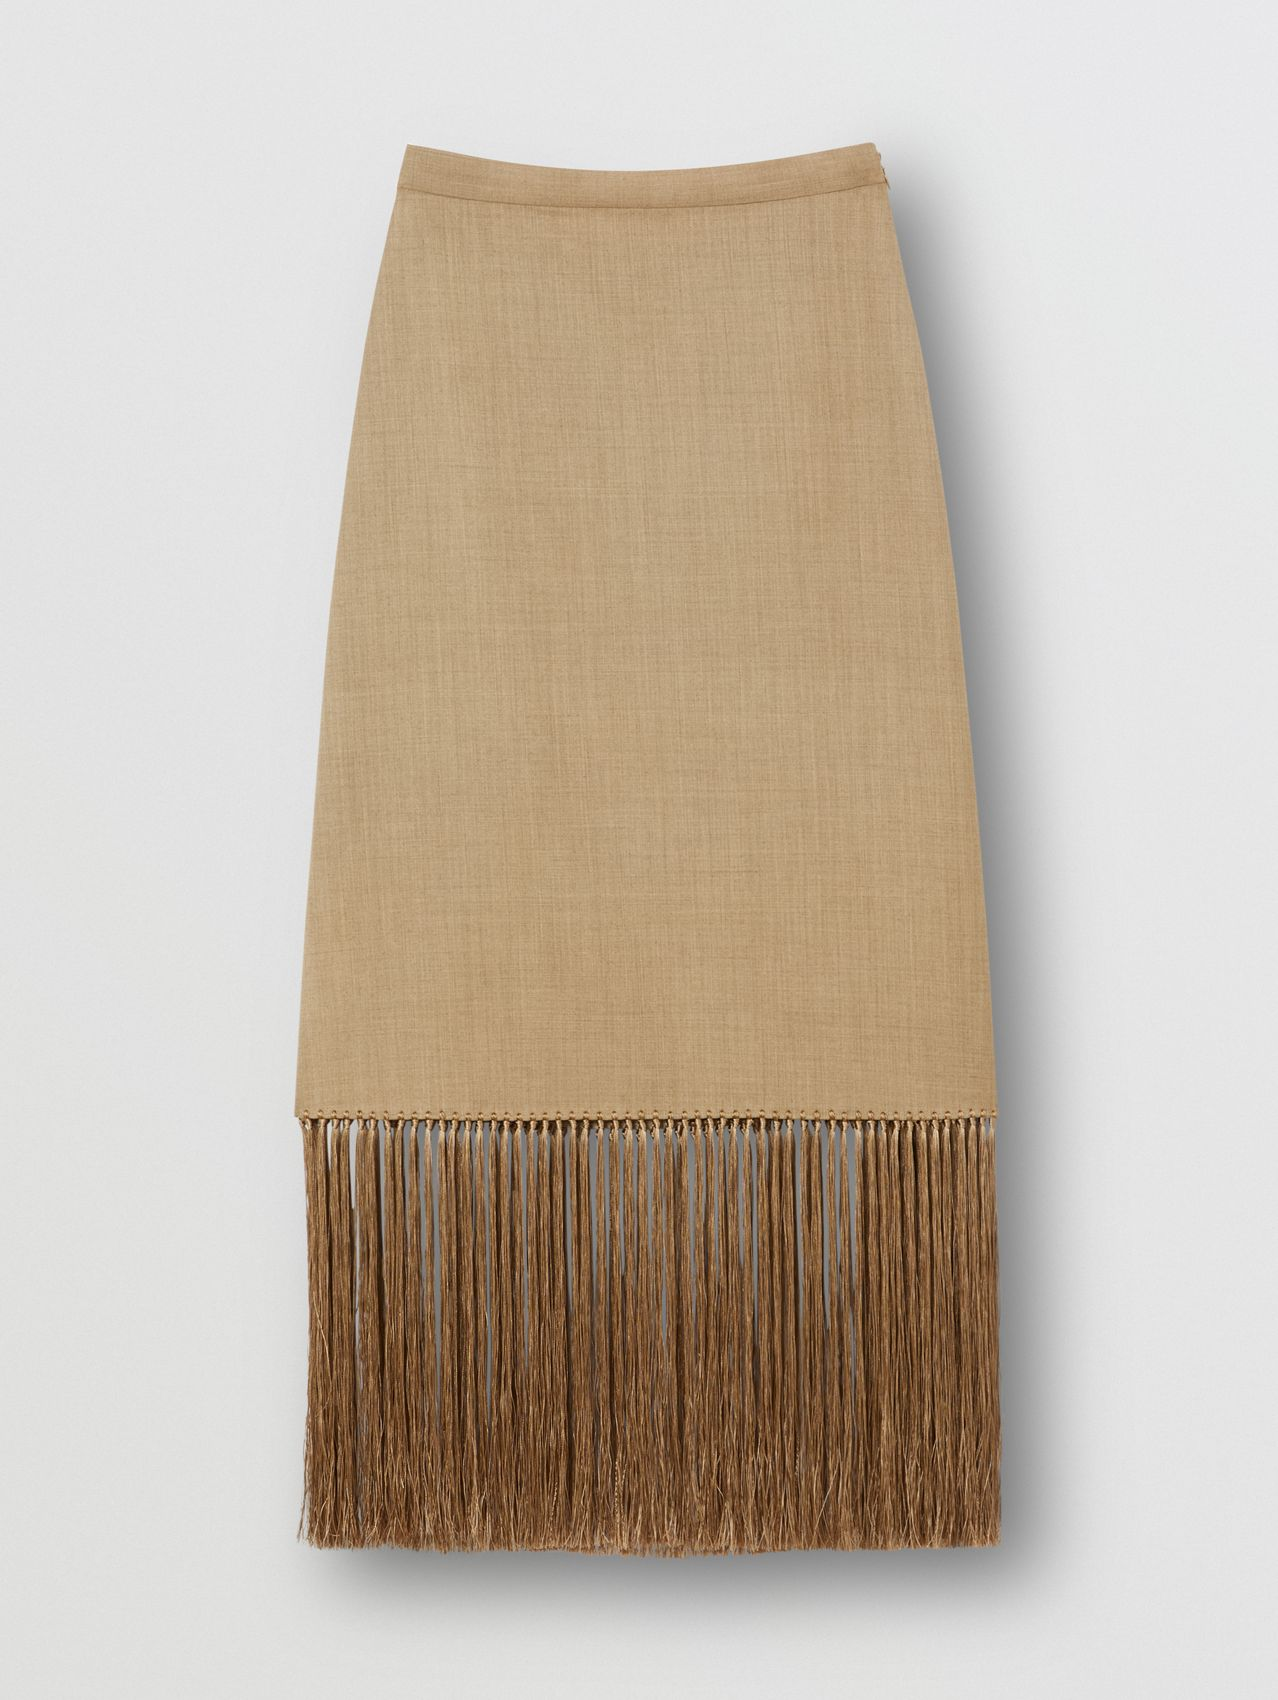 Fringed Wool Cashmere A-line Skirt in Pecan Melange